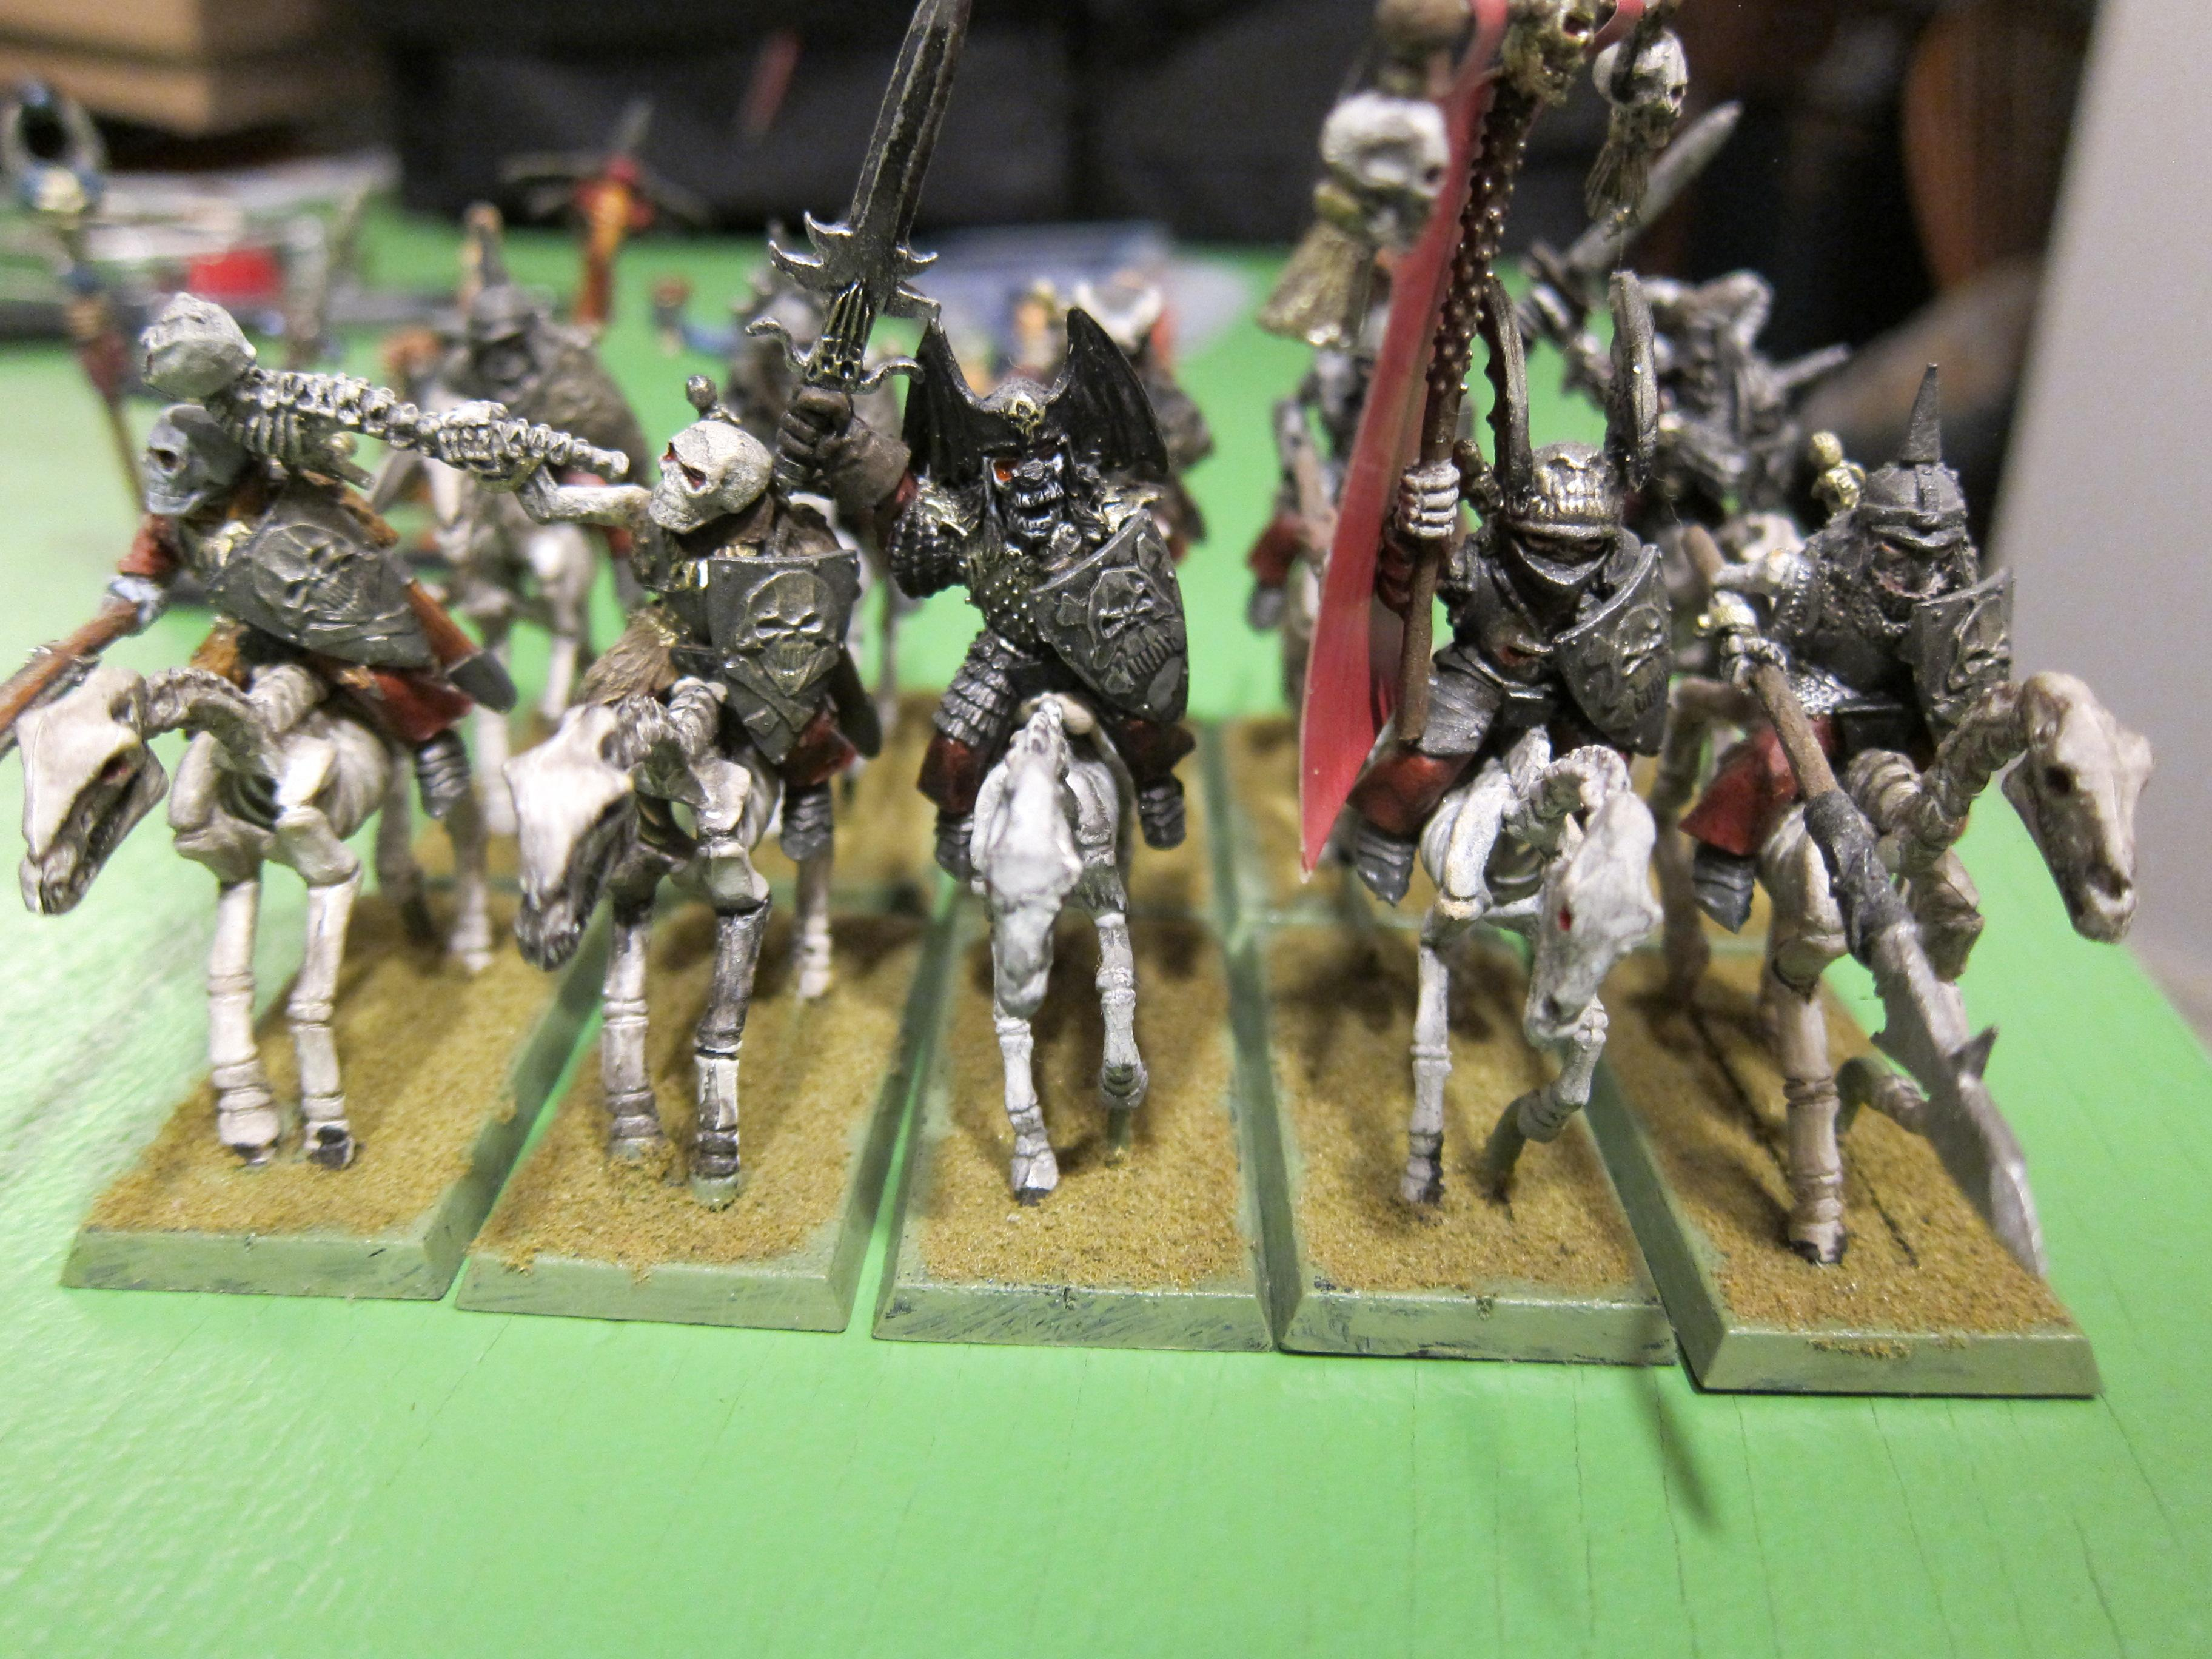 Mounted Wights